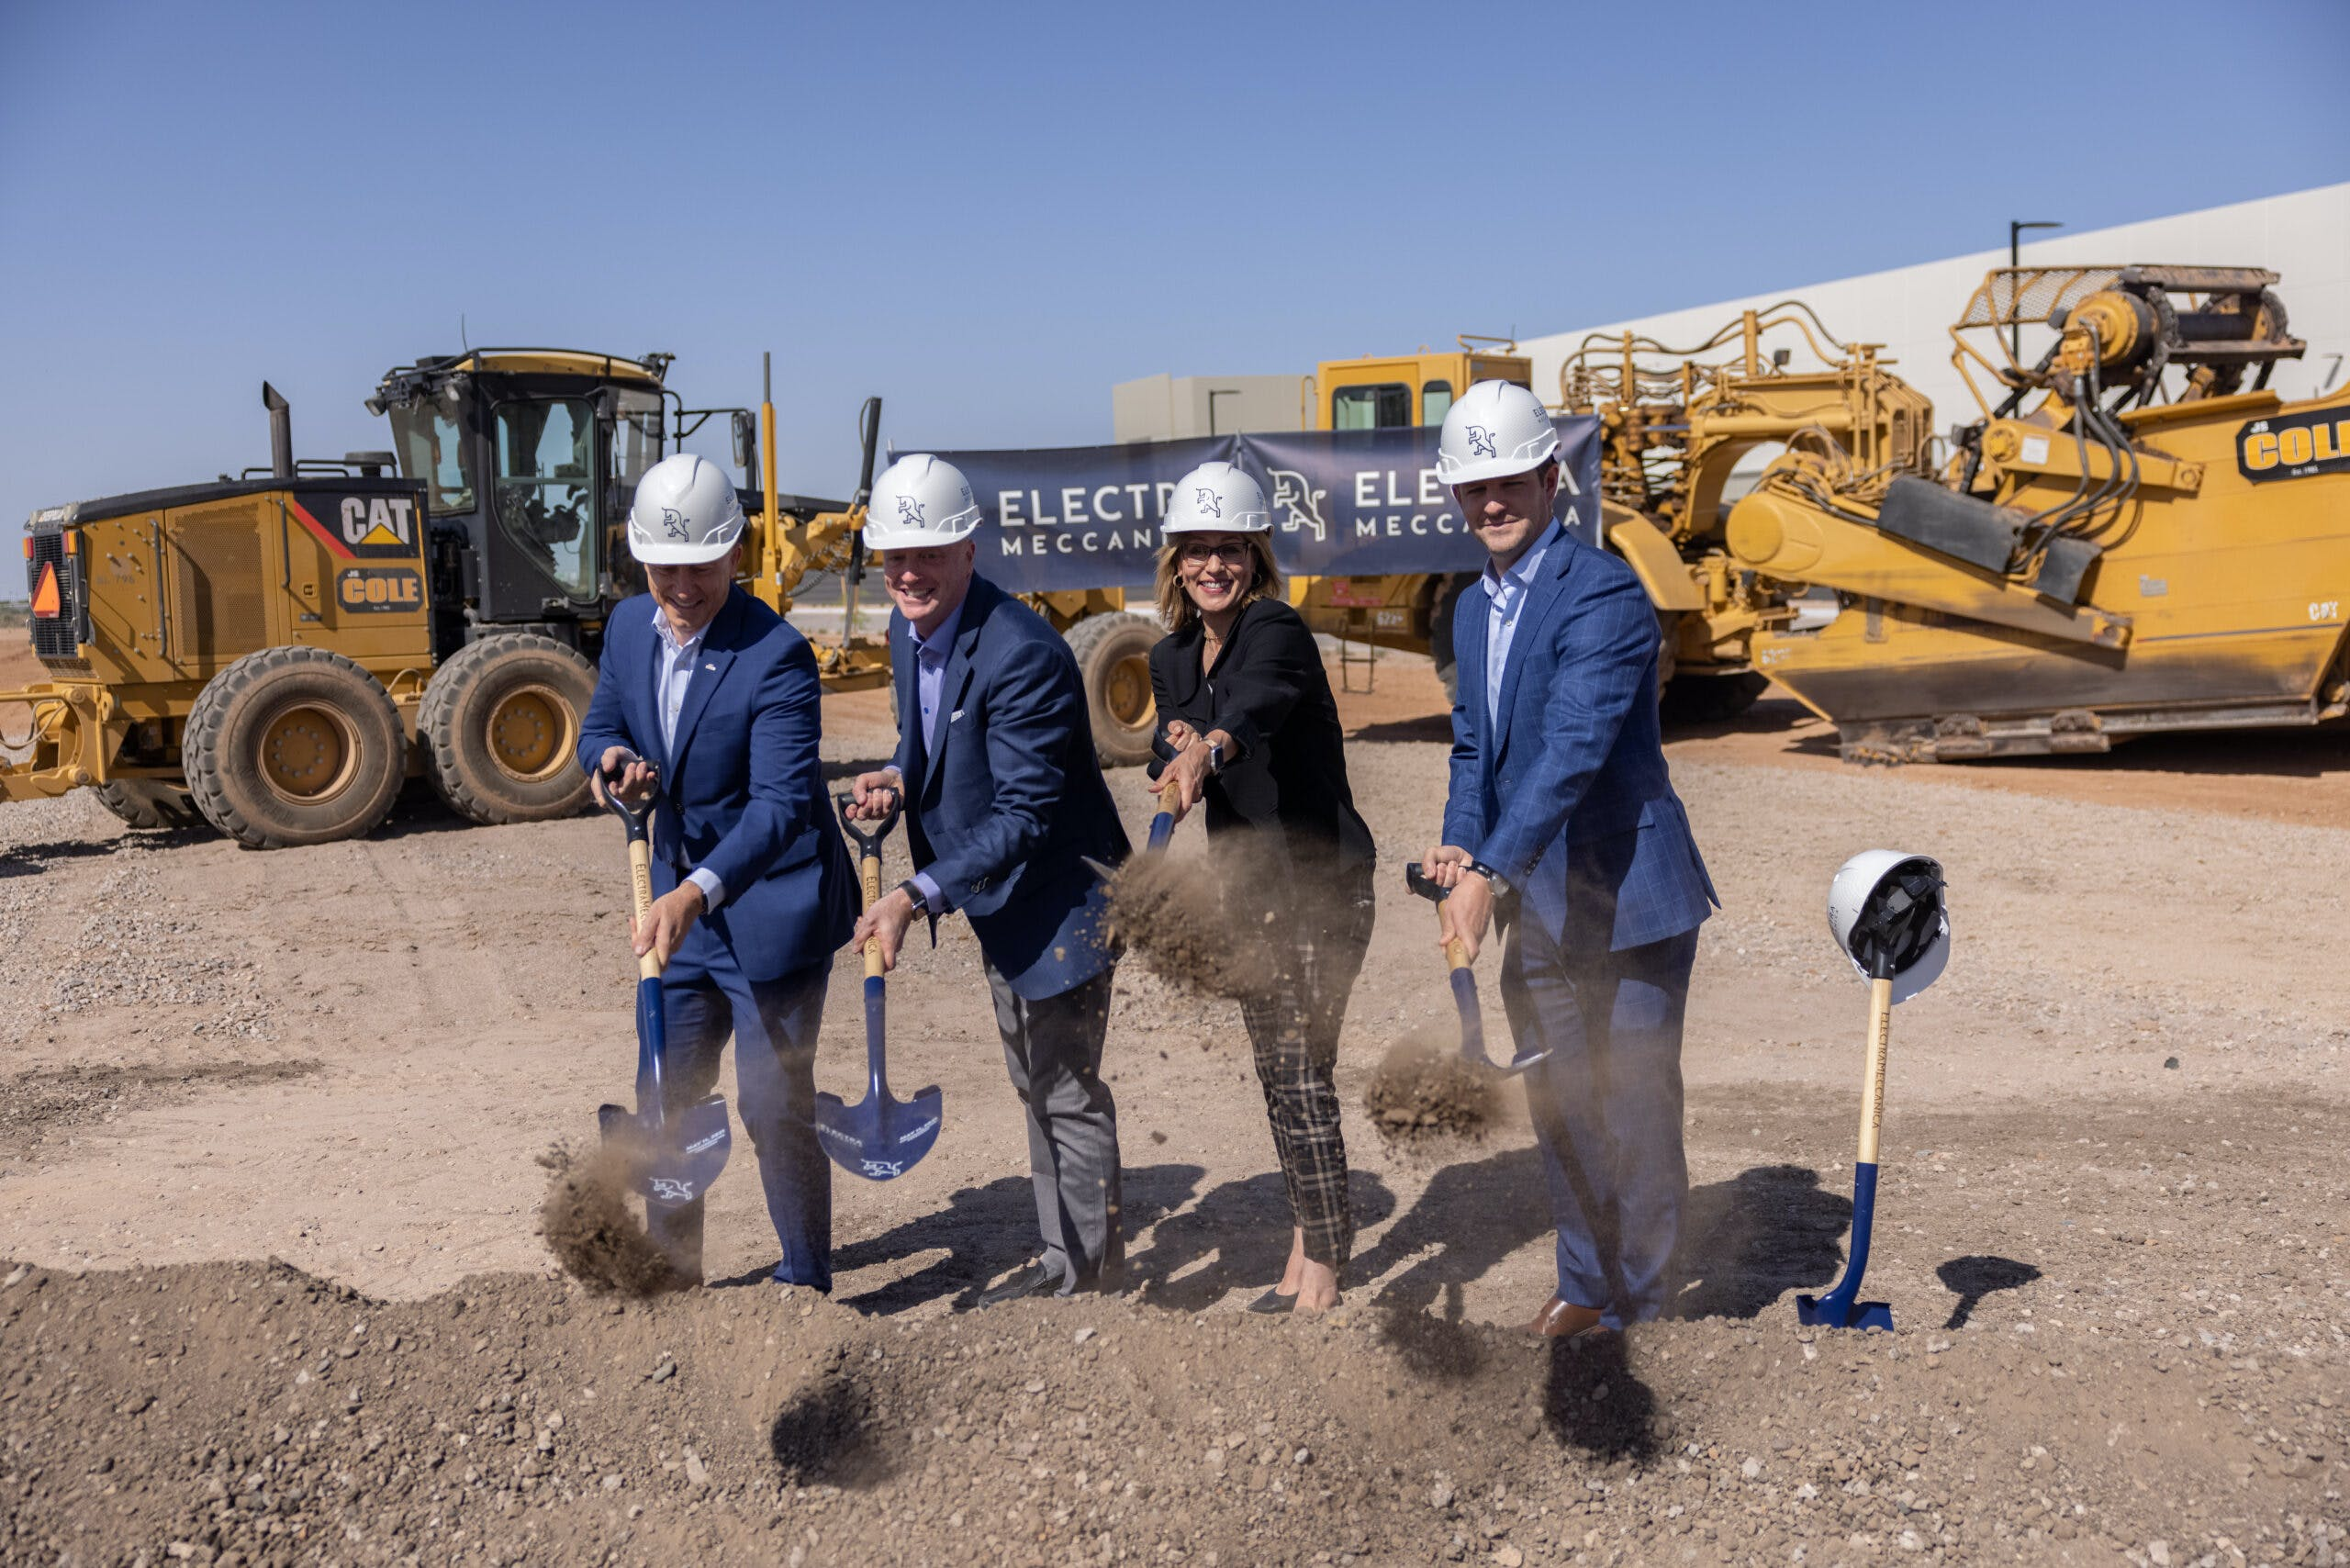 ElectraMeccanica breaks ground on new U.S. assembly and engineering plant in Mesa, AZ